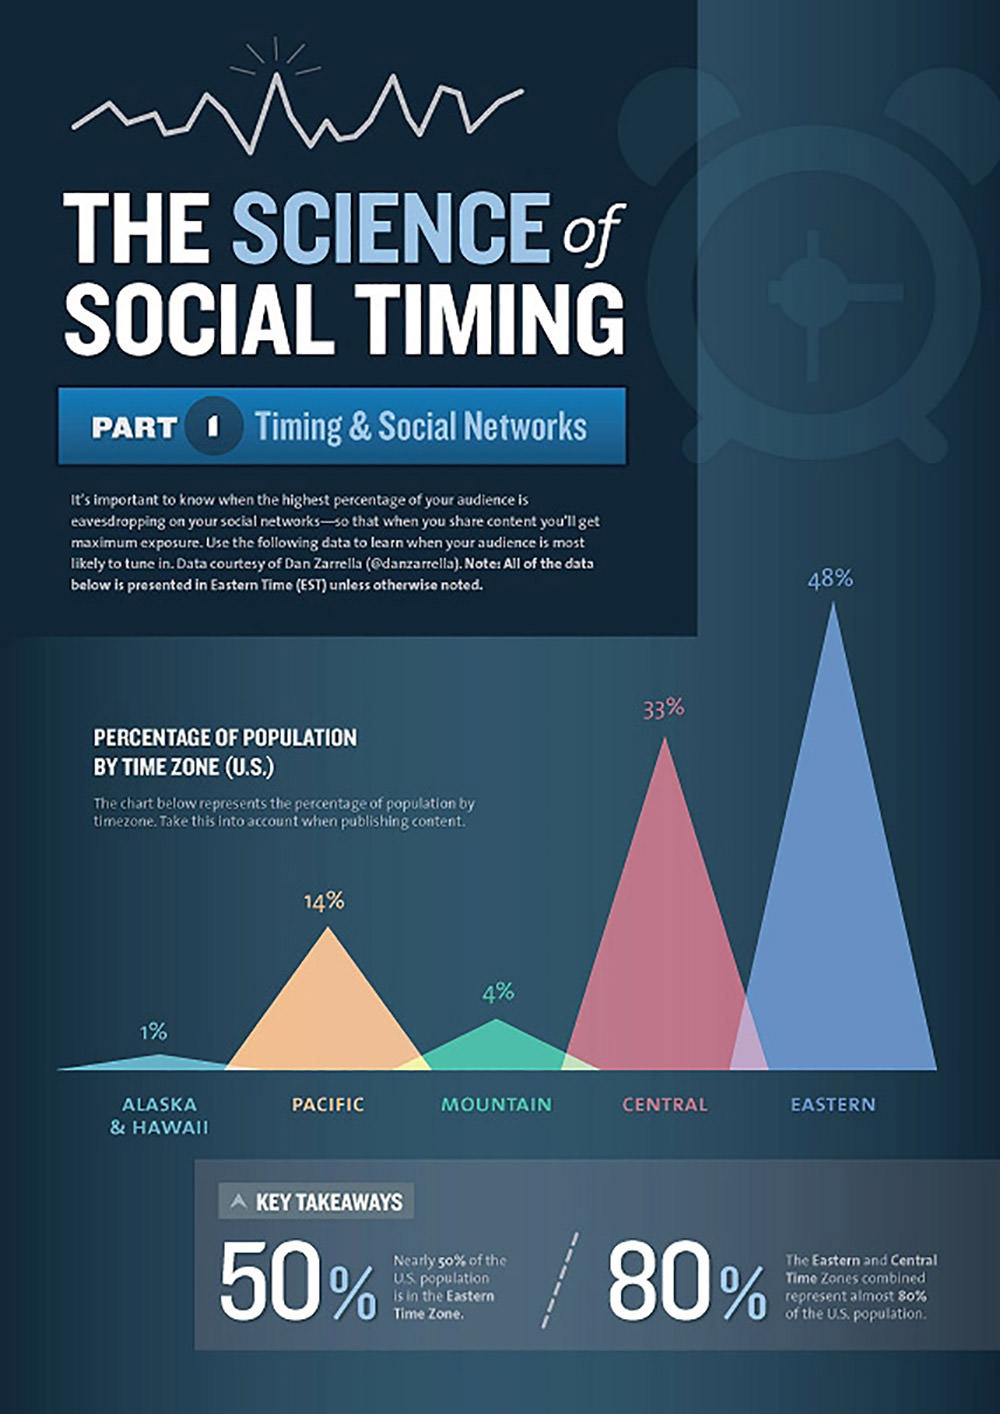 The Science of Social Timing Part 1